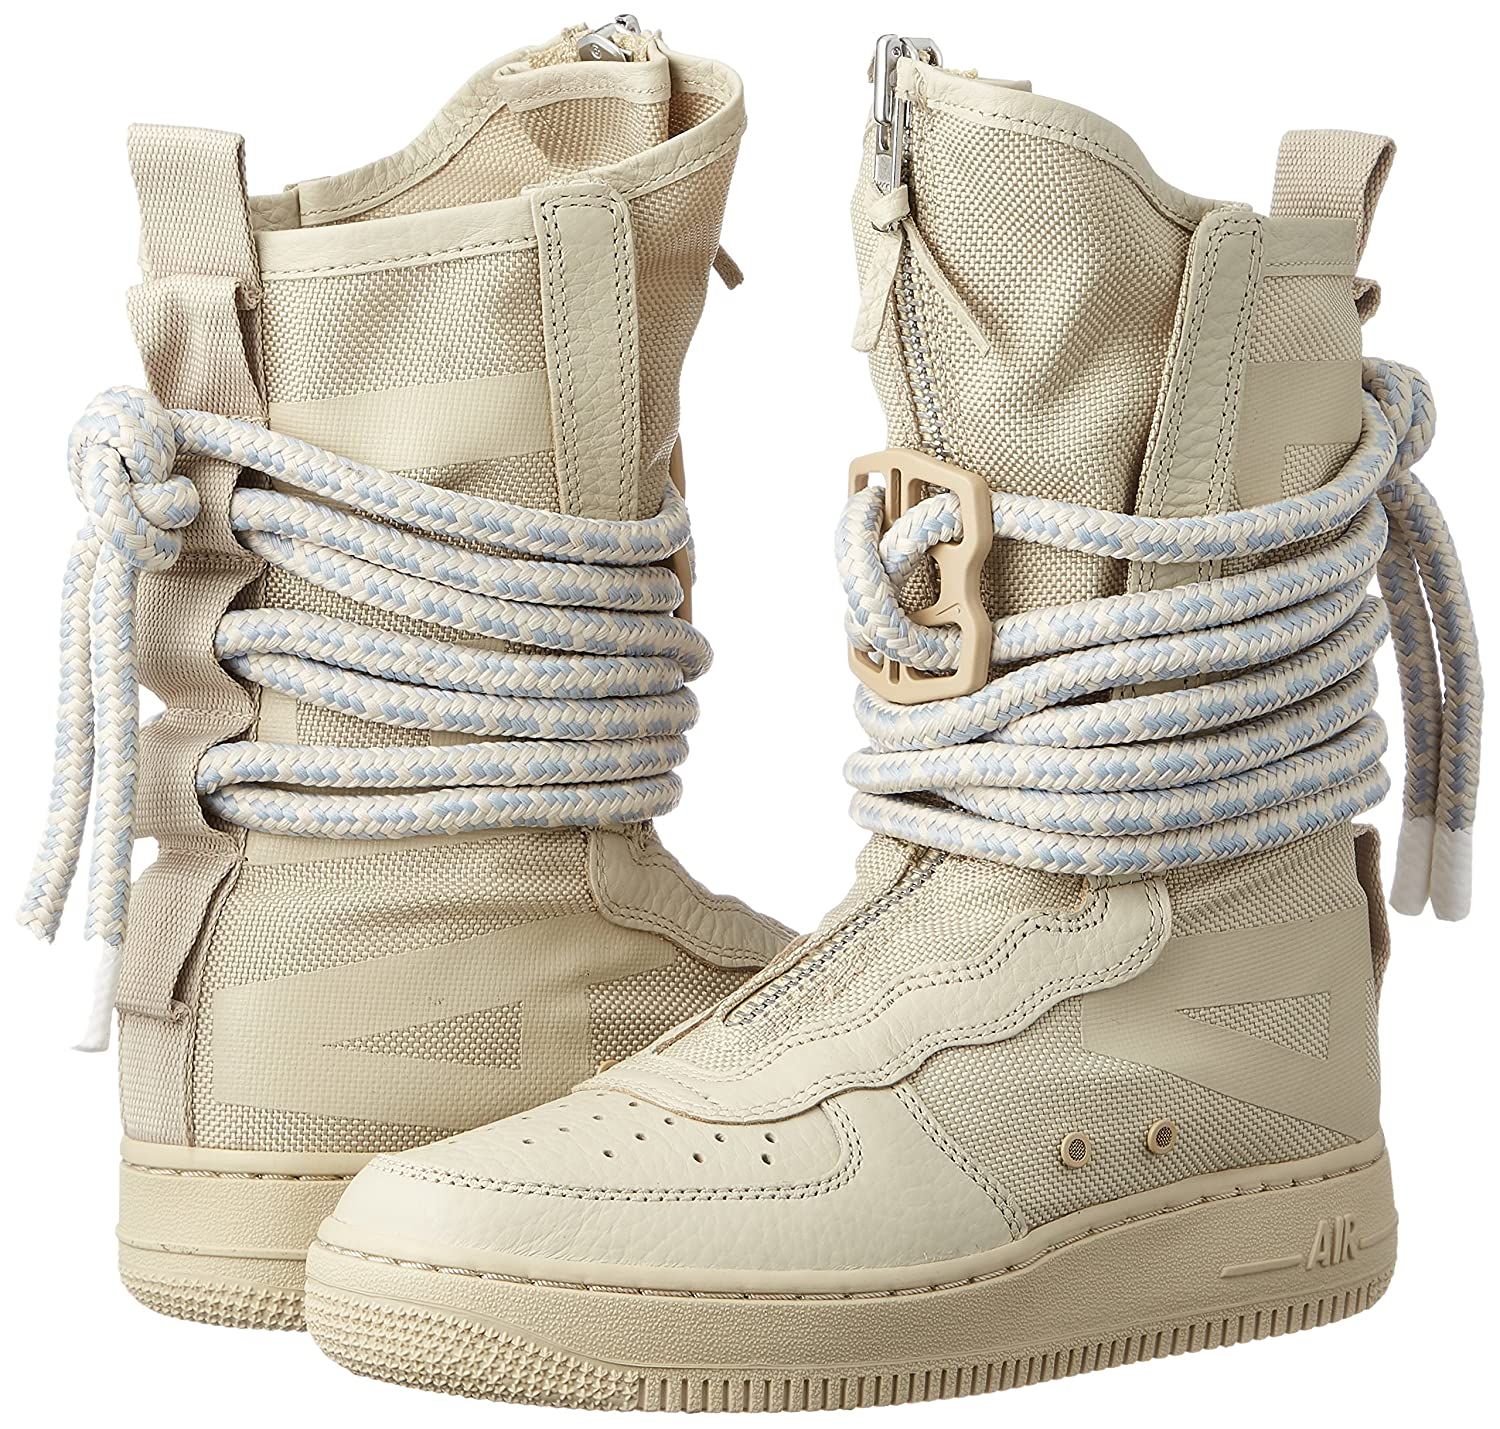 brand new 3f3d4 f9e2b Nike Women s Sf Af1 Hi Gymnastics Shoes  Amazon.co.uk  Shoes   Bags